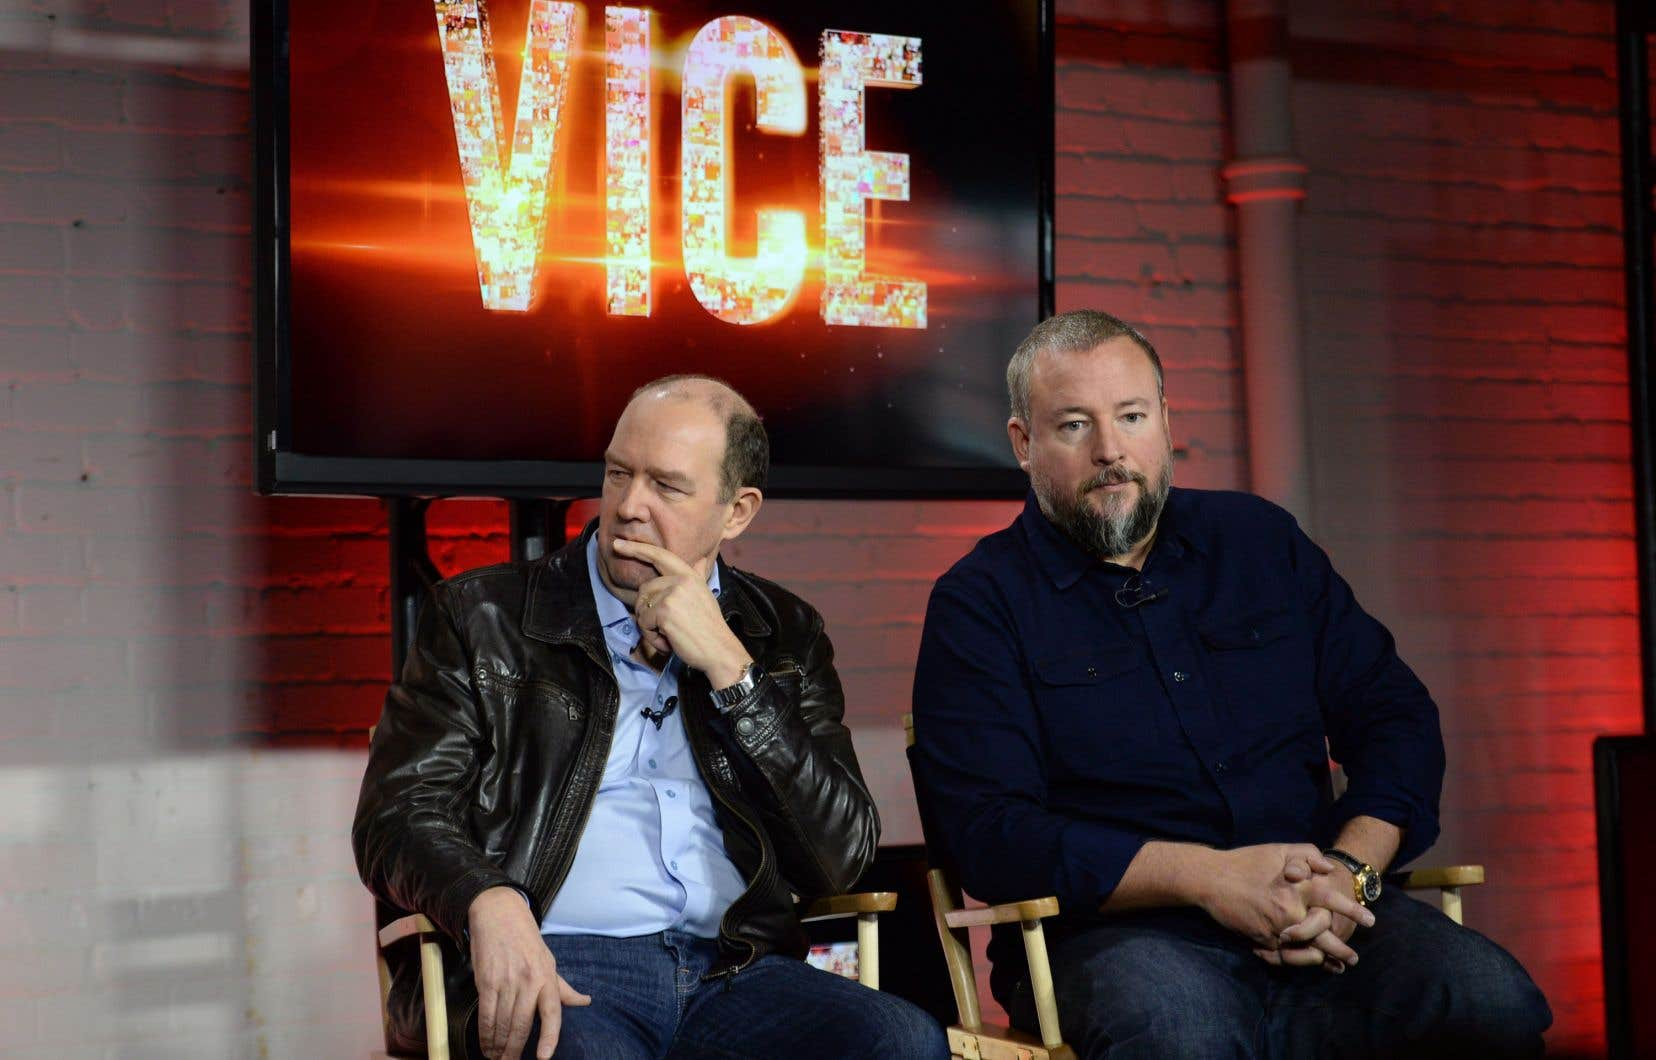 Le chef de la direction de Rogers, Guy Laurence (gauche), et le cofondateur de Vice Media, Shane Smith